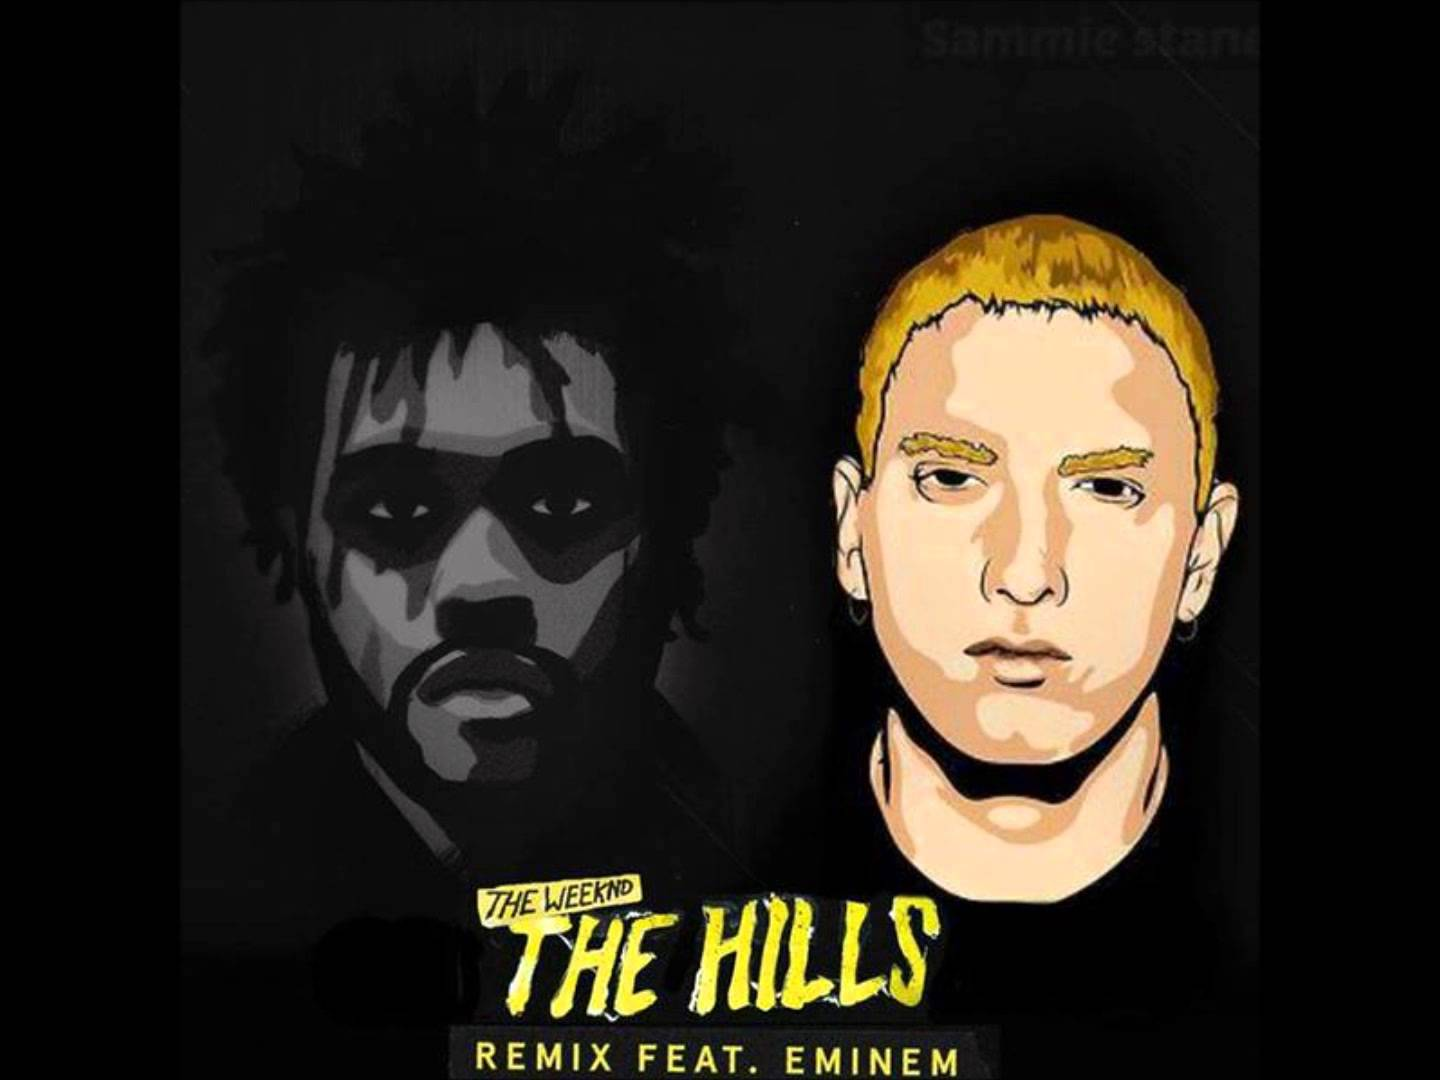 The Weeknd parla del ruolo di Eminem in The Hills (Remix) e in Renegade